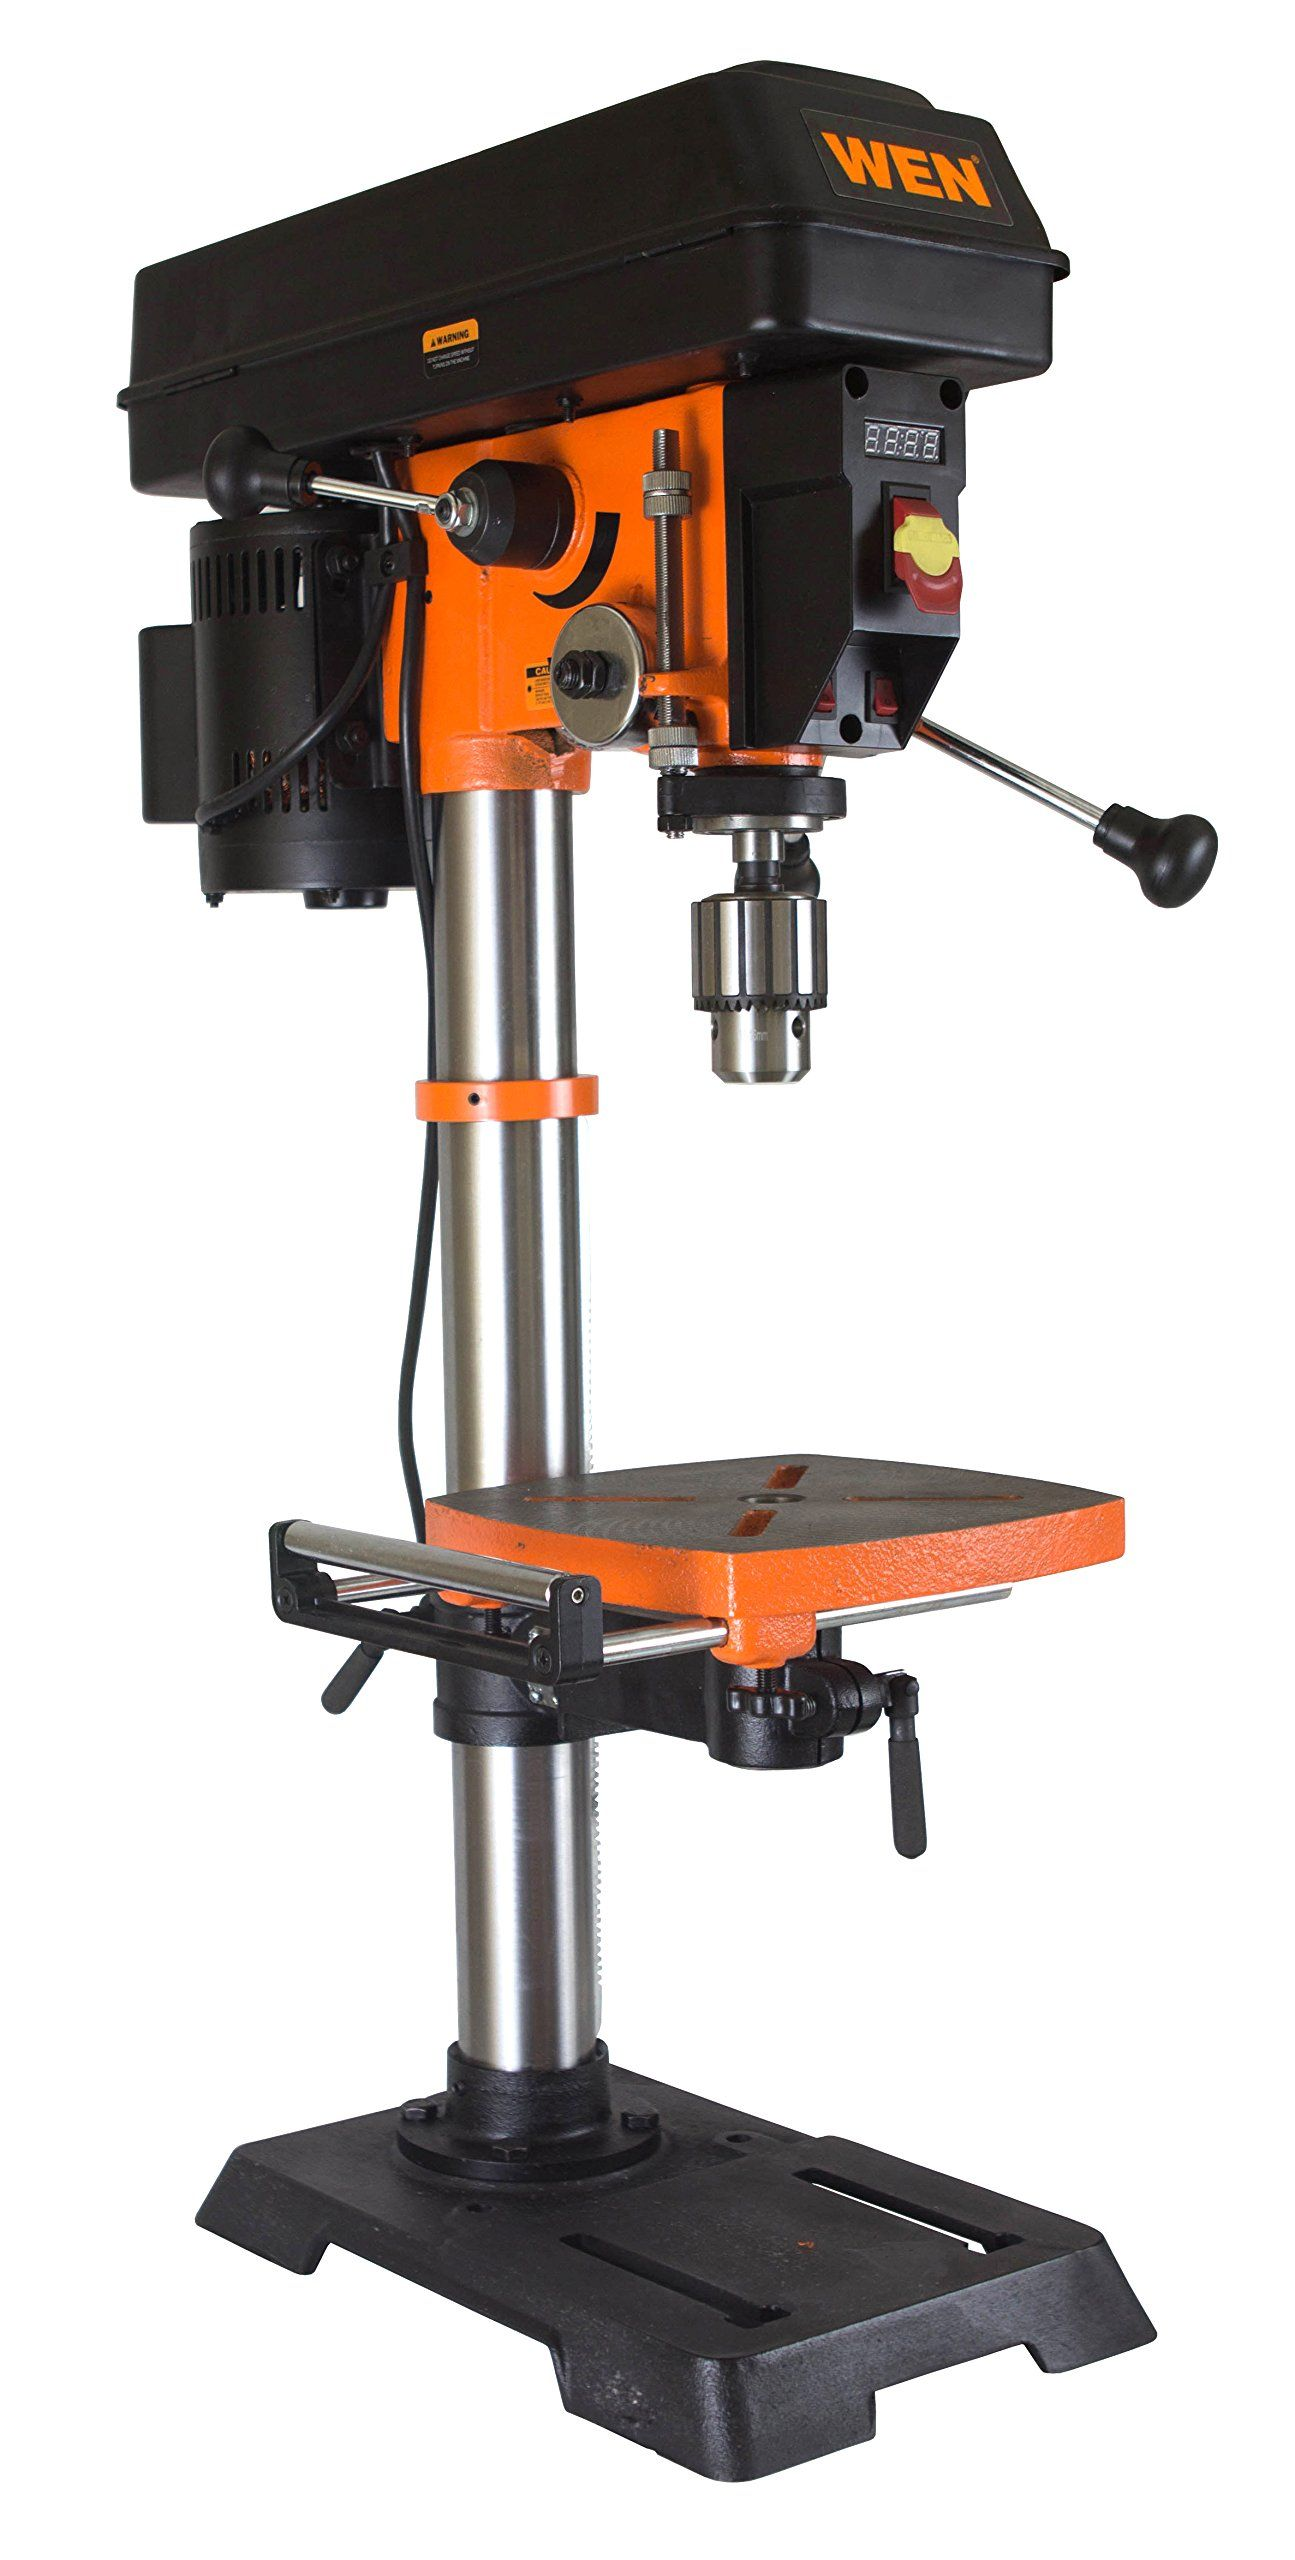 Wen 4214 12inch Variable Speed Drill Press Learn More By Visiting The Image Link This Is An Affiliate Link Woodworking Drill Press Speed Drills Drill